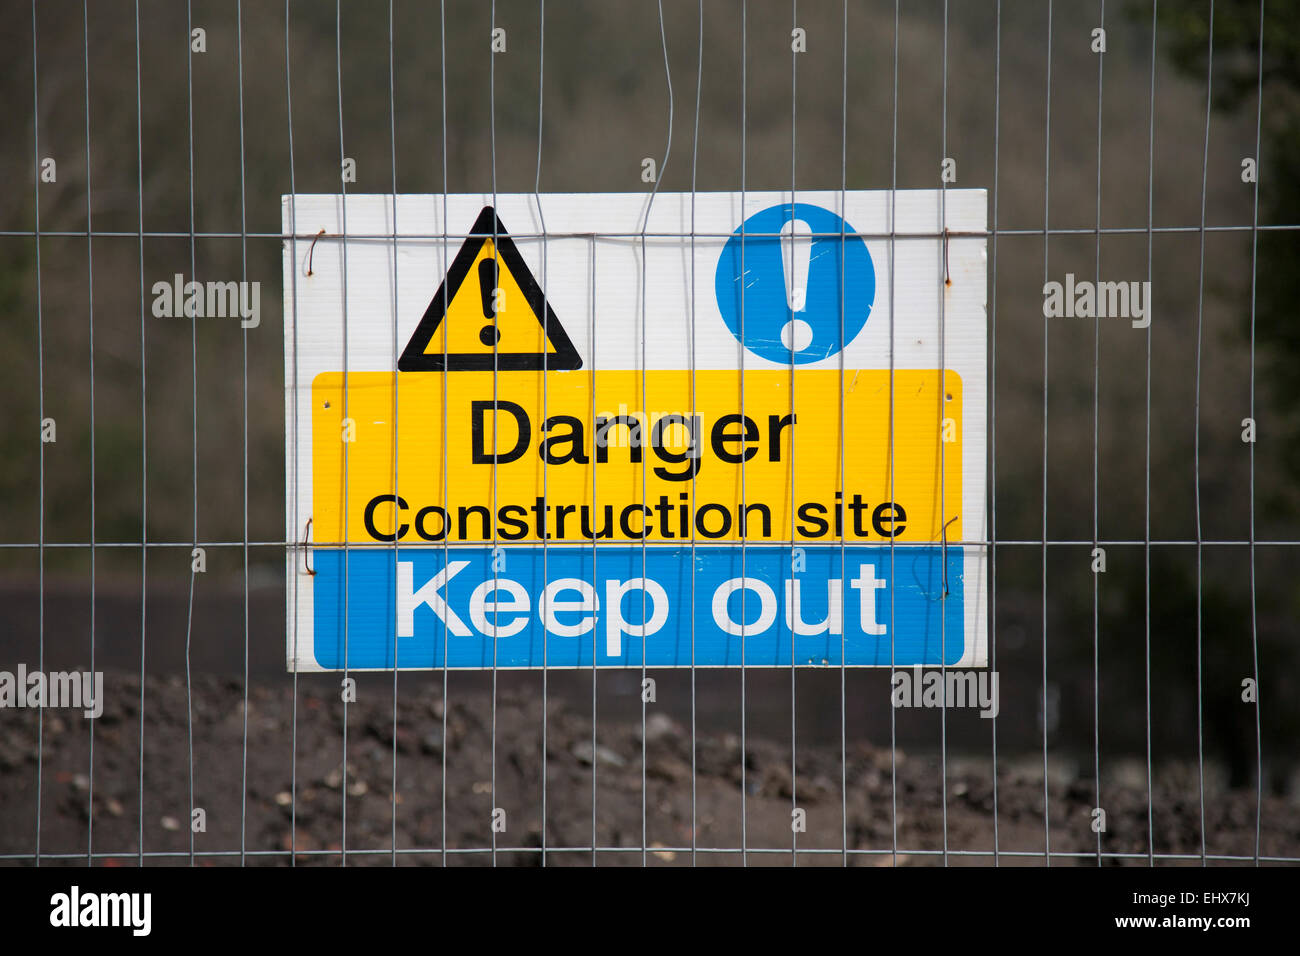 Danger Construction Site Keep Out sign - Stock Image